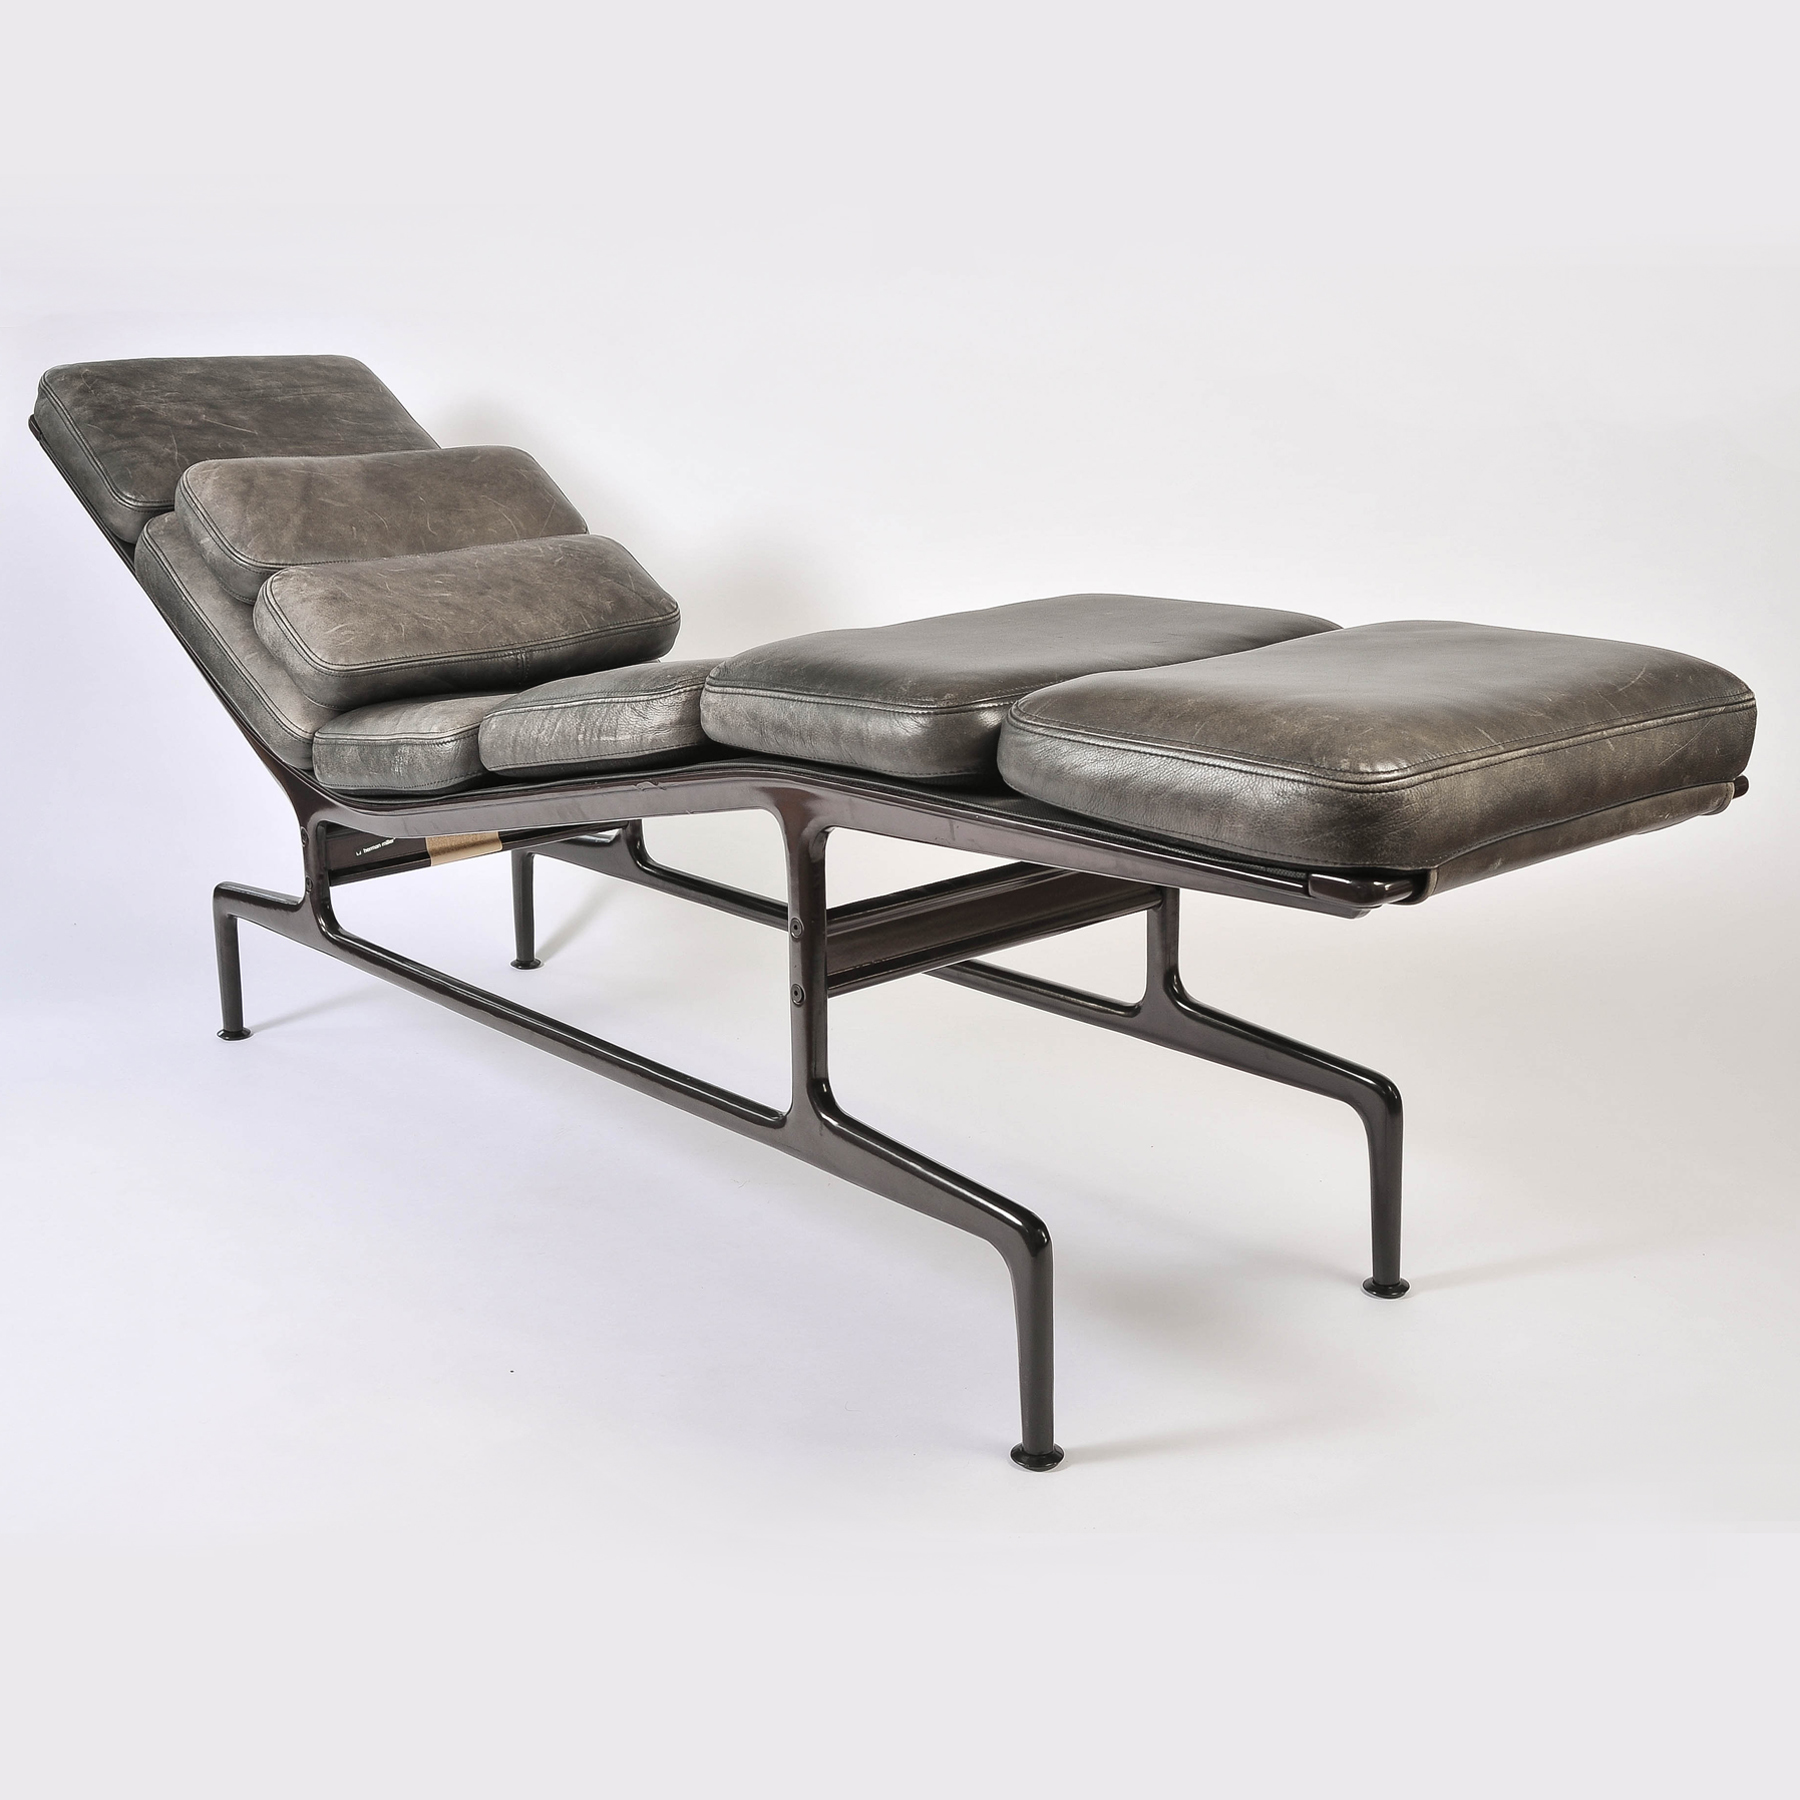 chaise imitation charles eames elegant eames la chaise chair eames chair buy eames la chaise. Black Bedroom Furniture Sets. Home Design Ideas